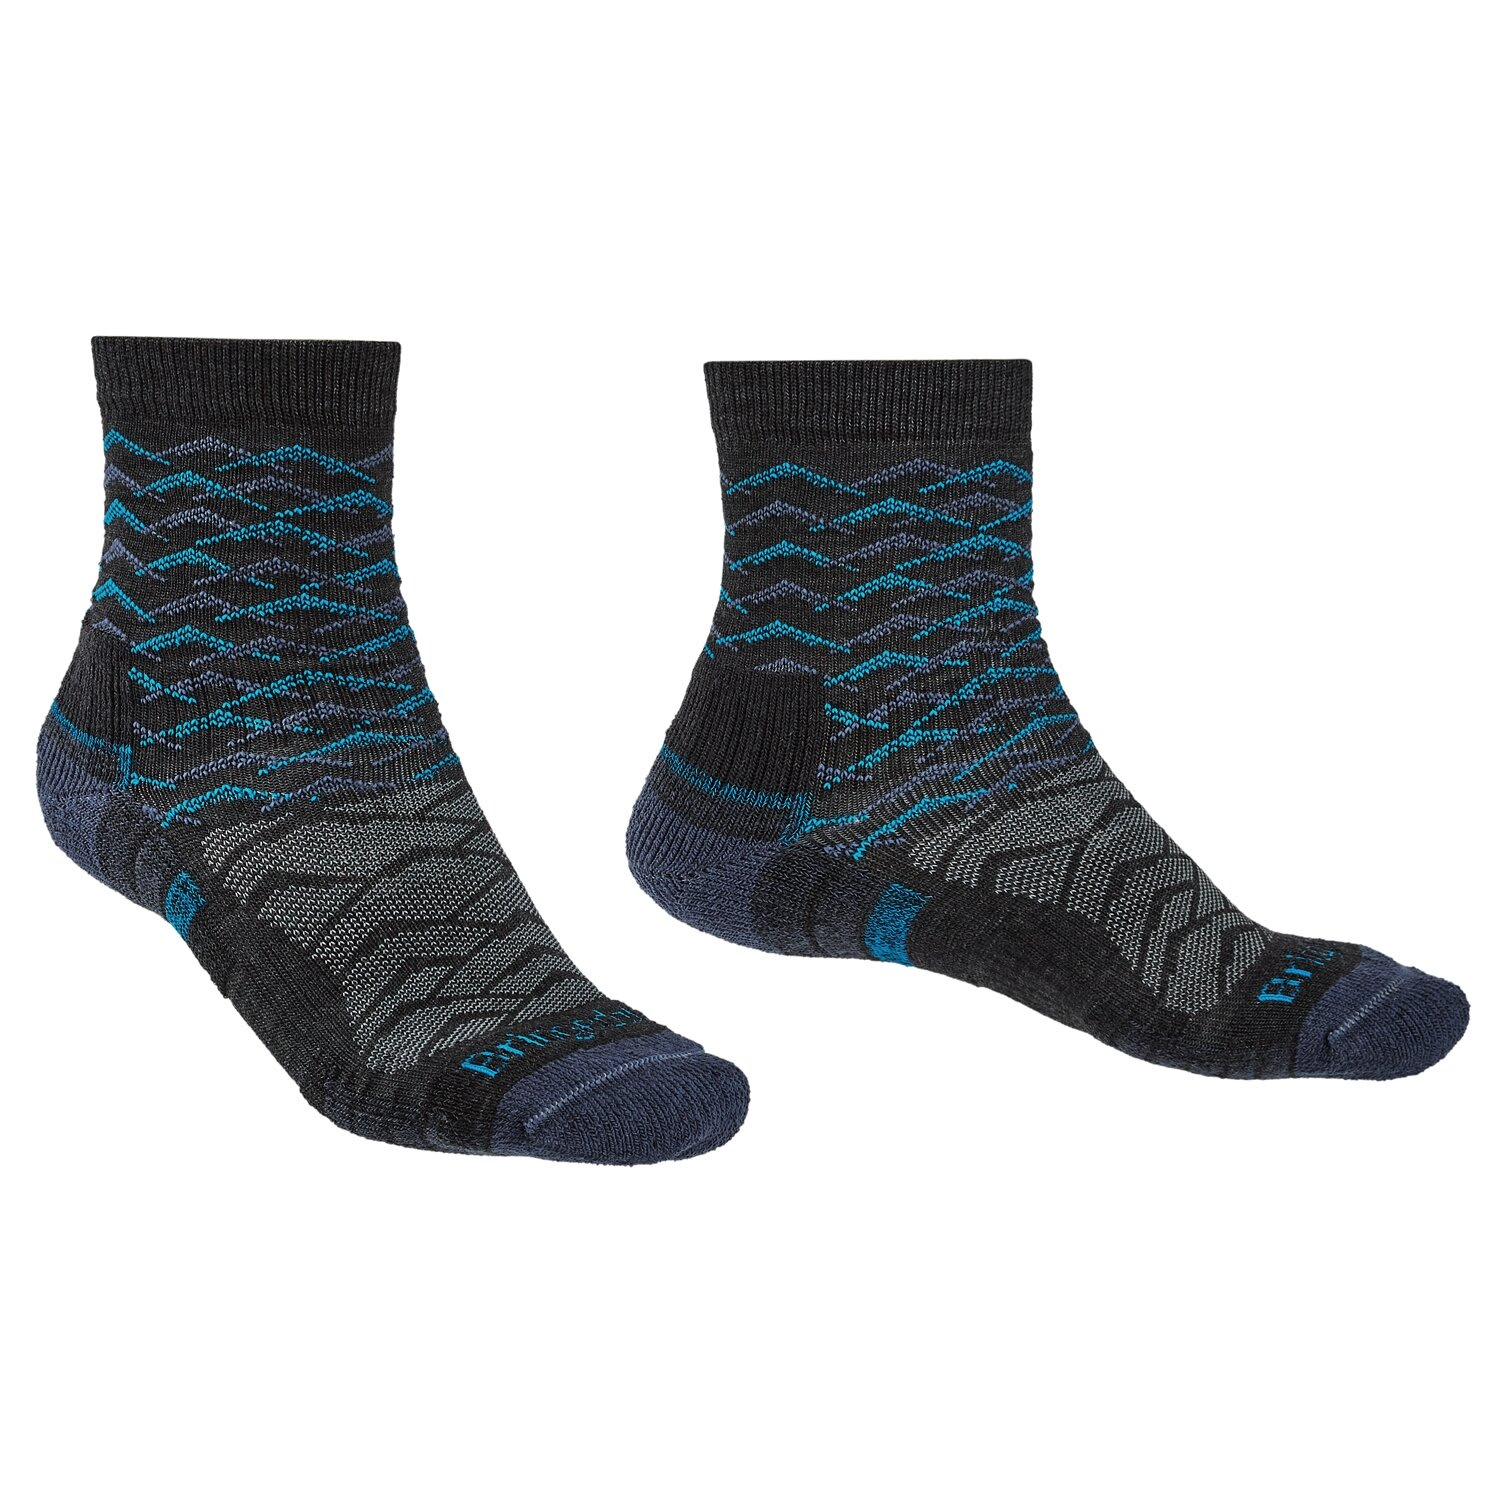 Bridgedale Men's Merino Lightweight Ankle Sock